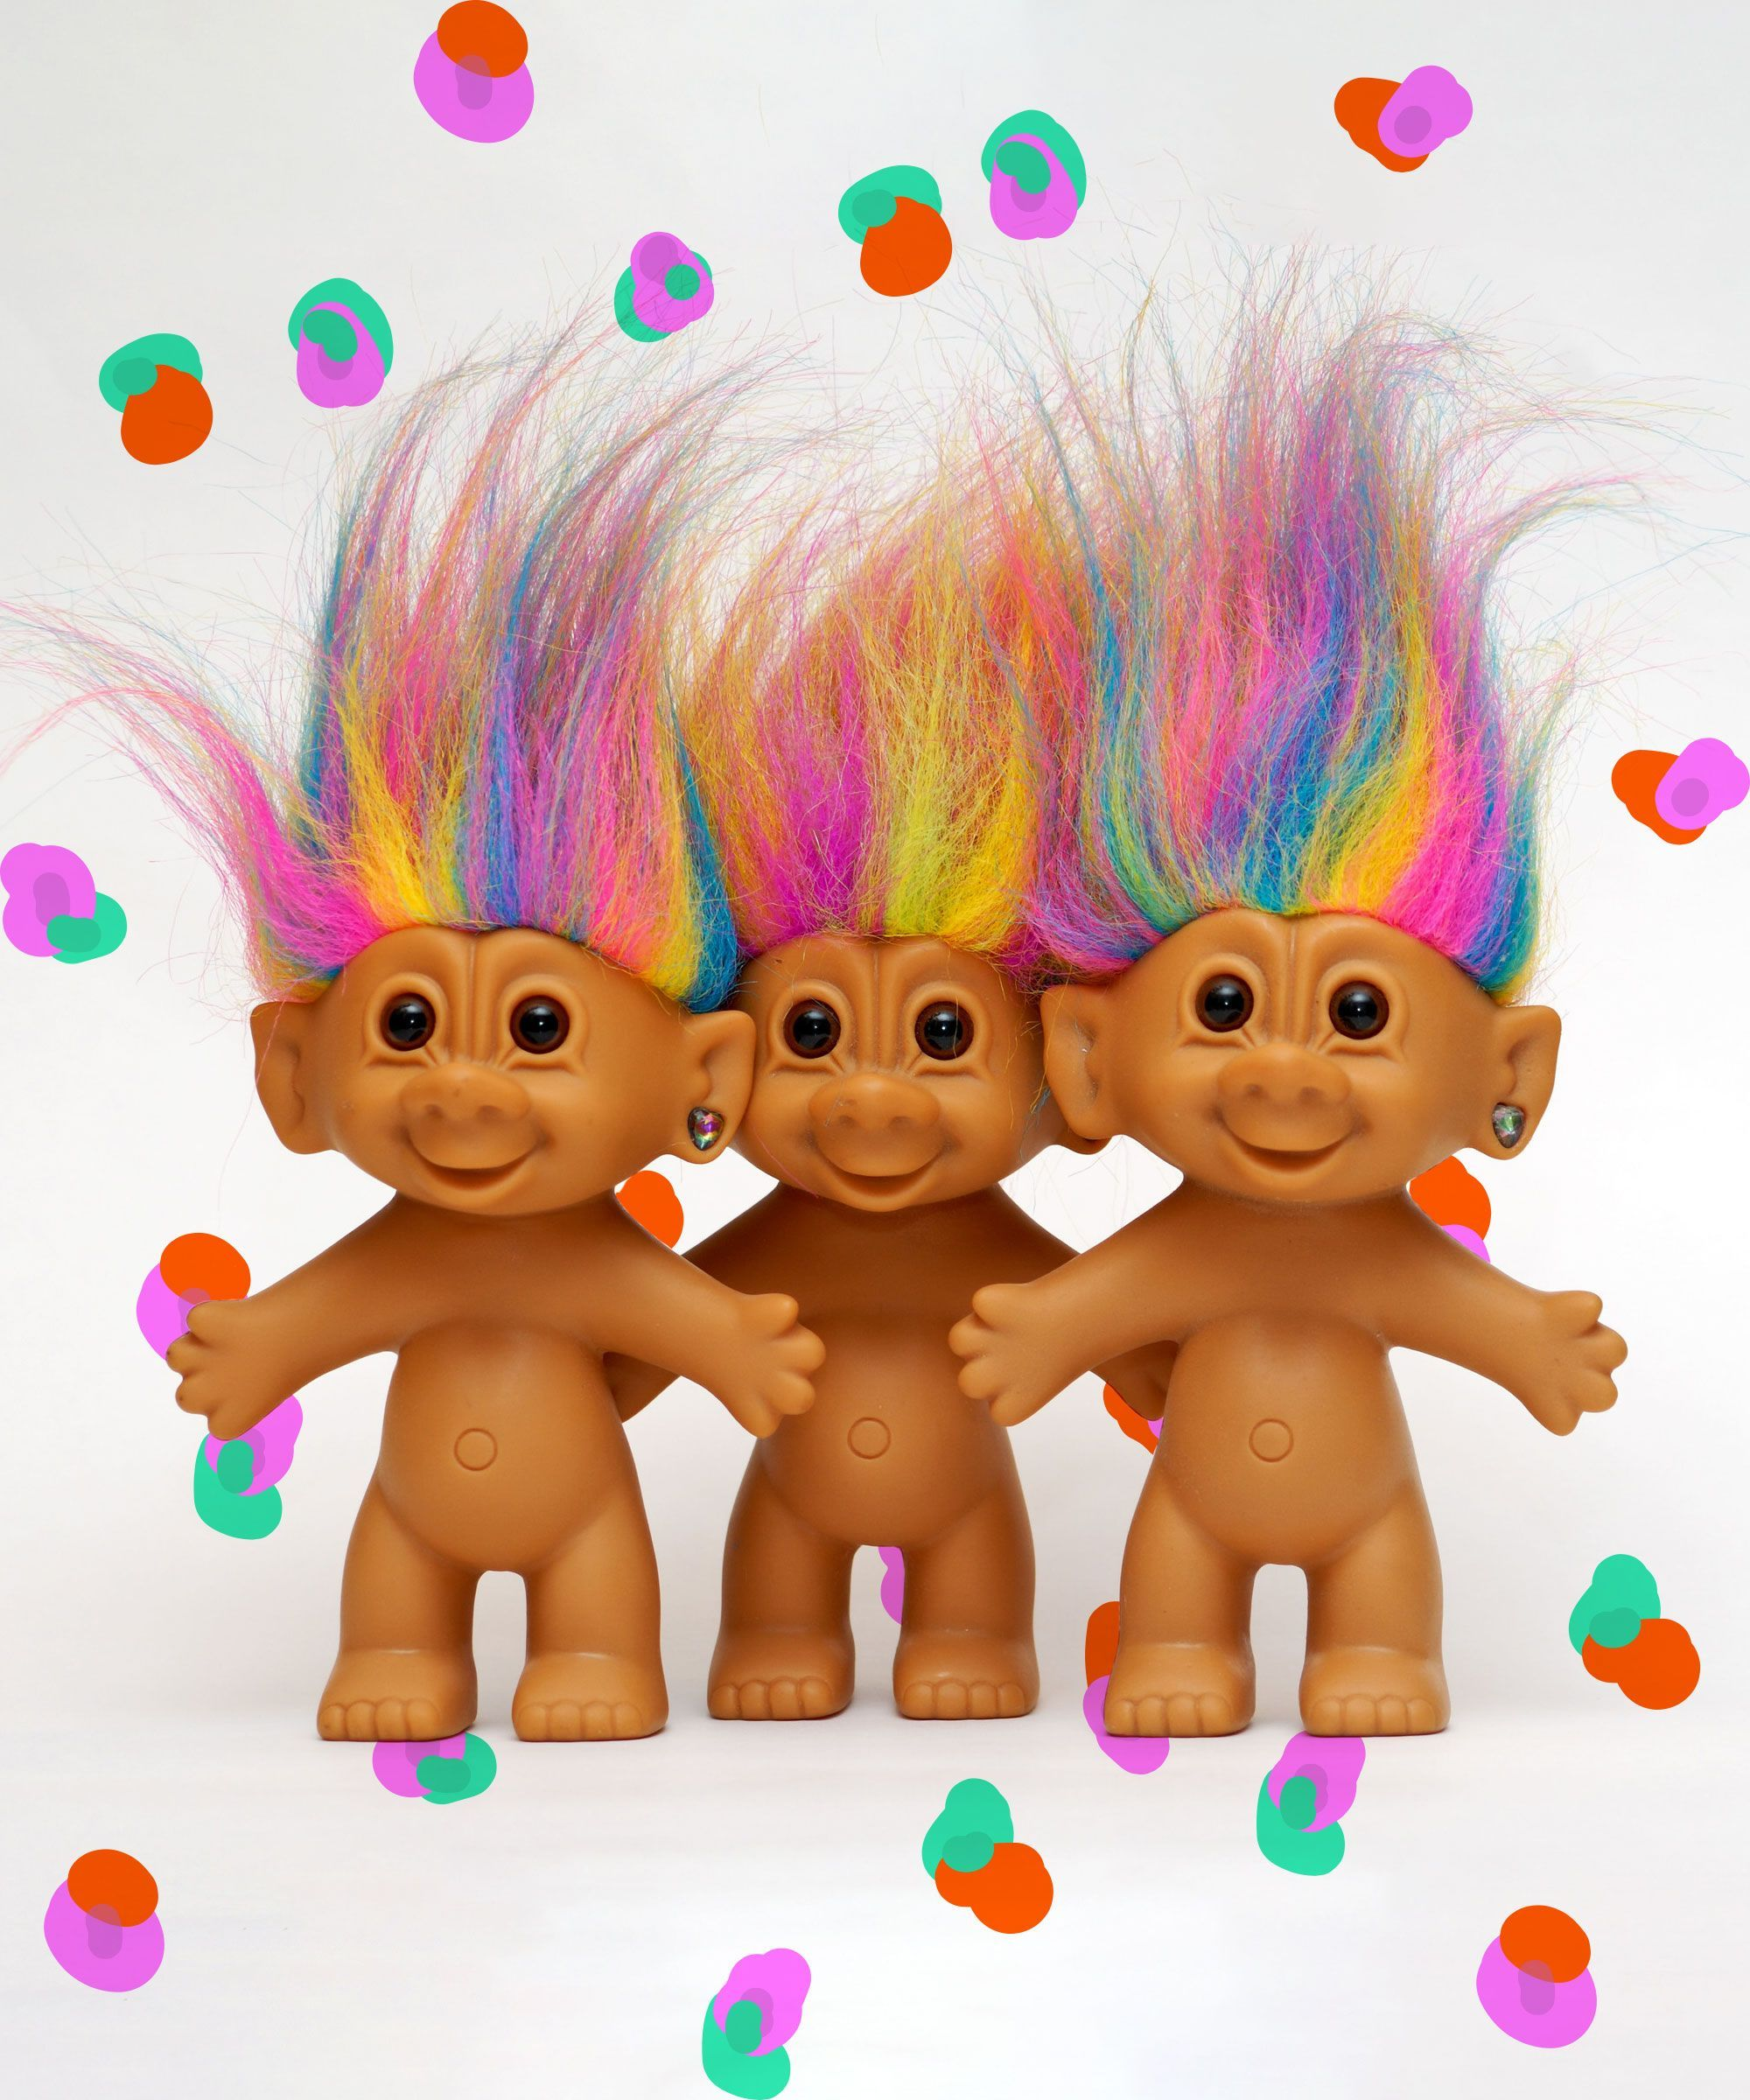 90s clipart troll, 90s troll Transparent FREE for download.